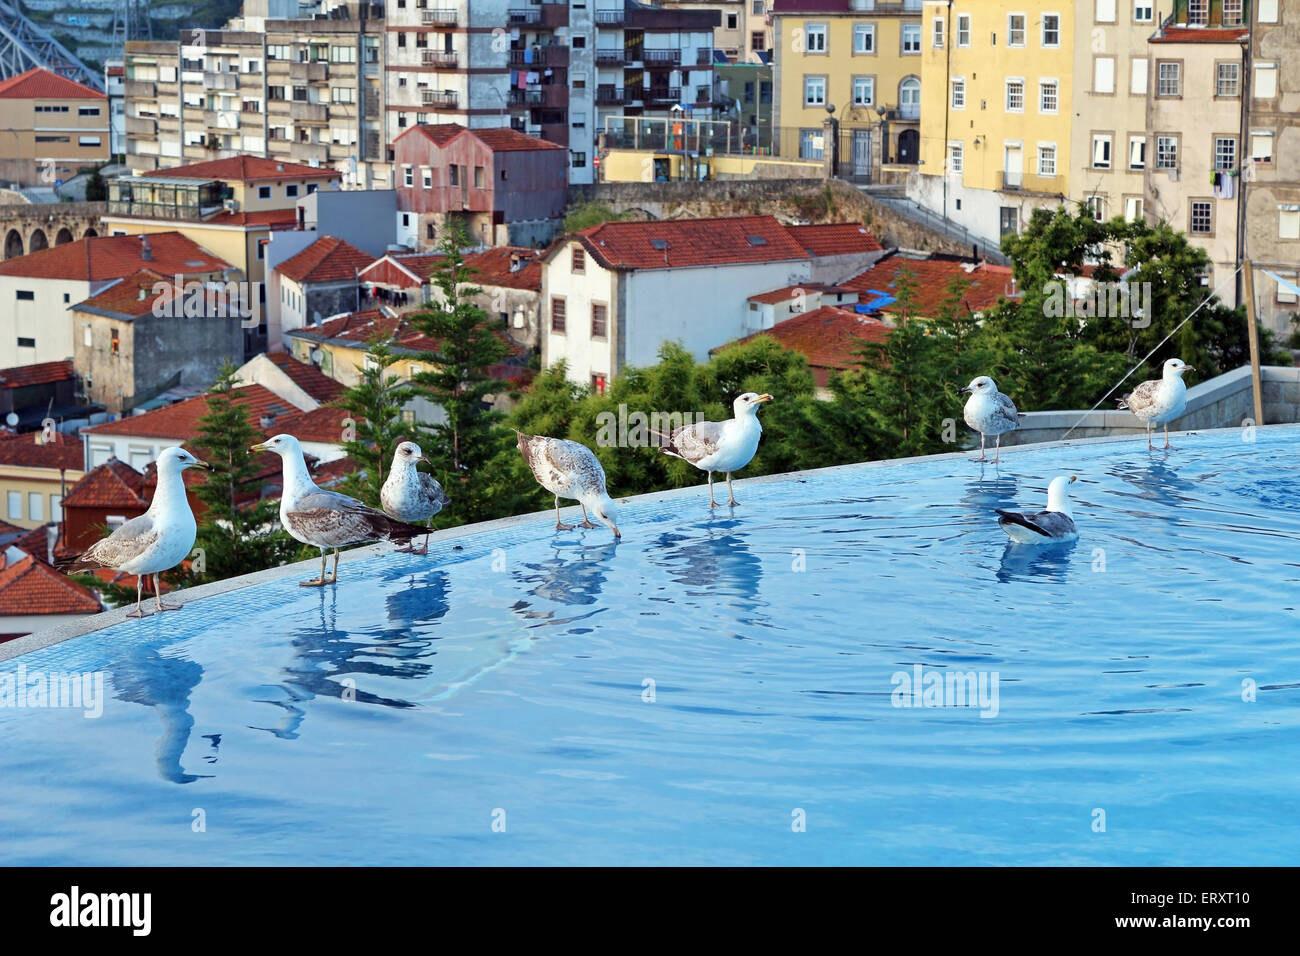 Seagulls drinking from pool in Oporto, Portugal - Stock Image